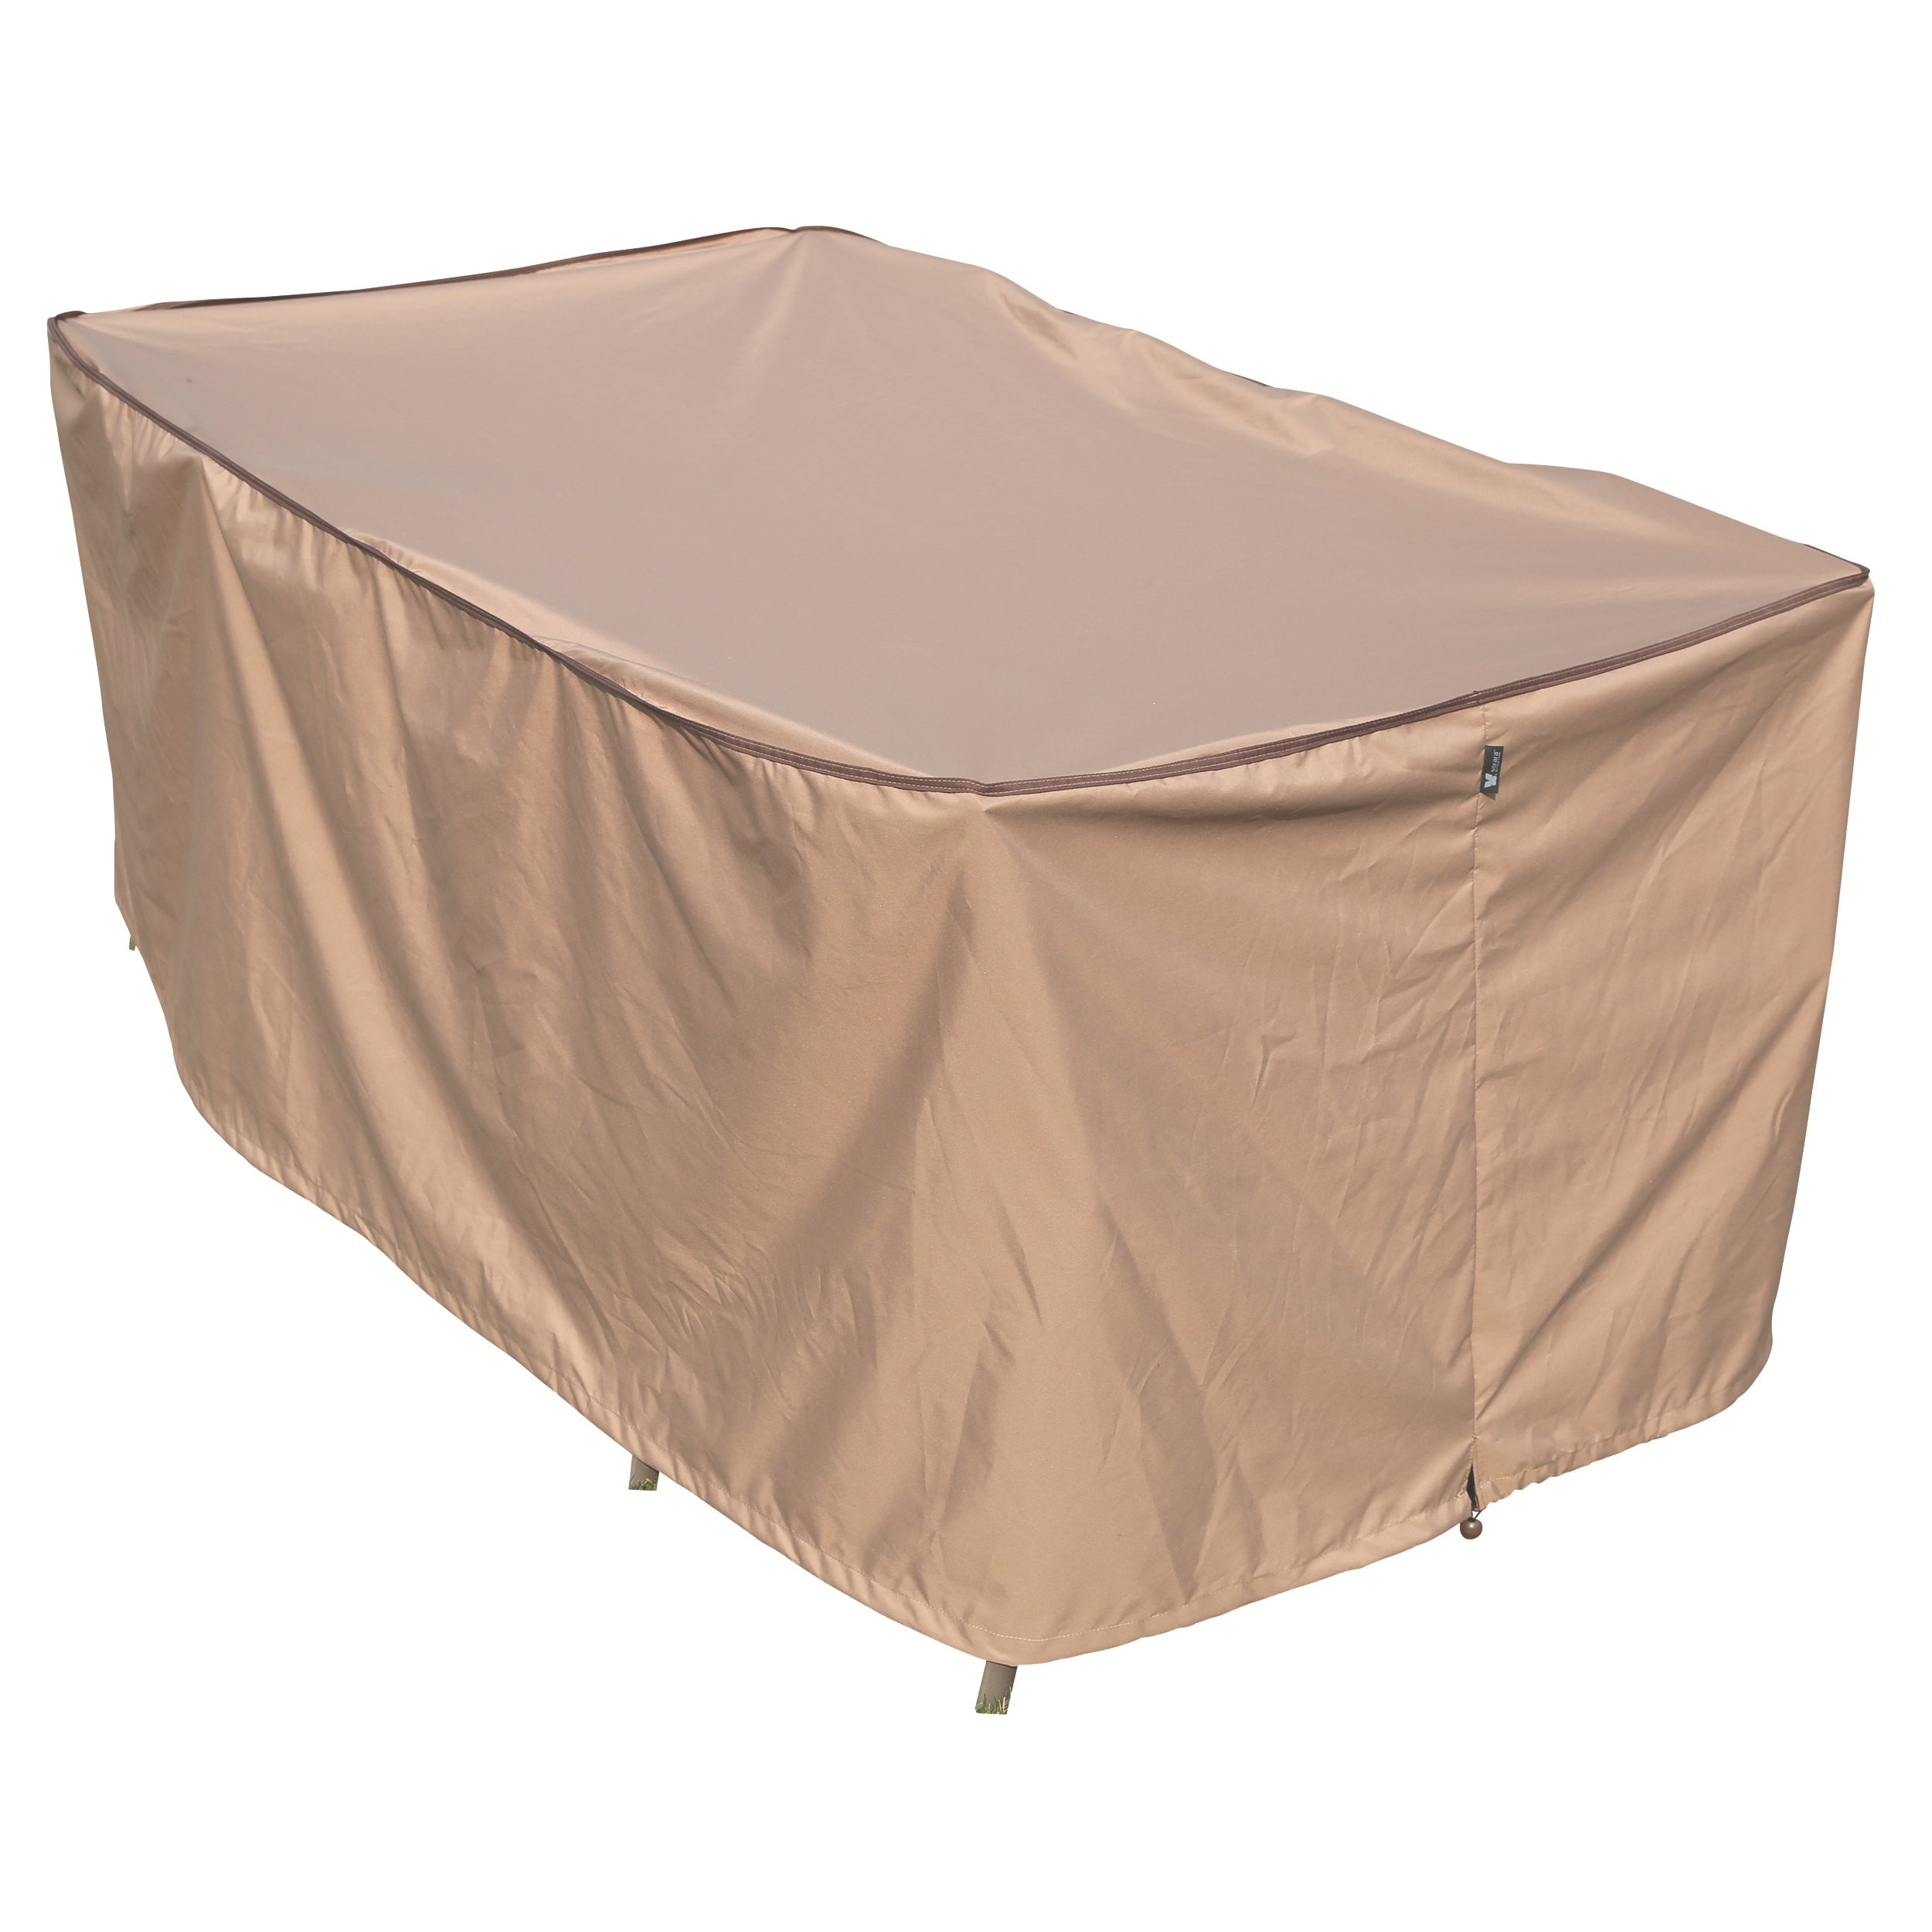 Attirant Shop TrueShade Plus Large Rectangular Table And Chair Set Cover   Free  Shipping Today   Overstock.com   11595278